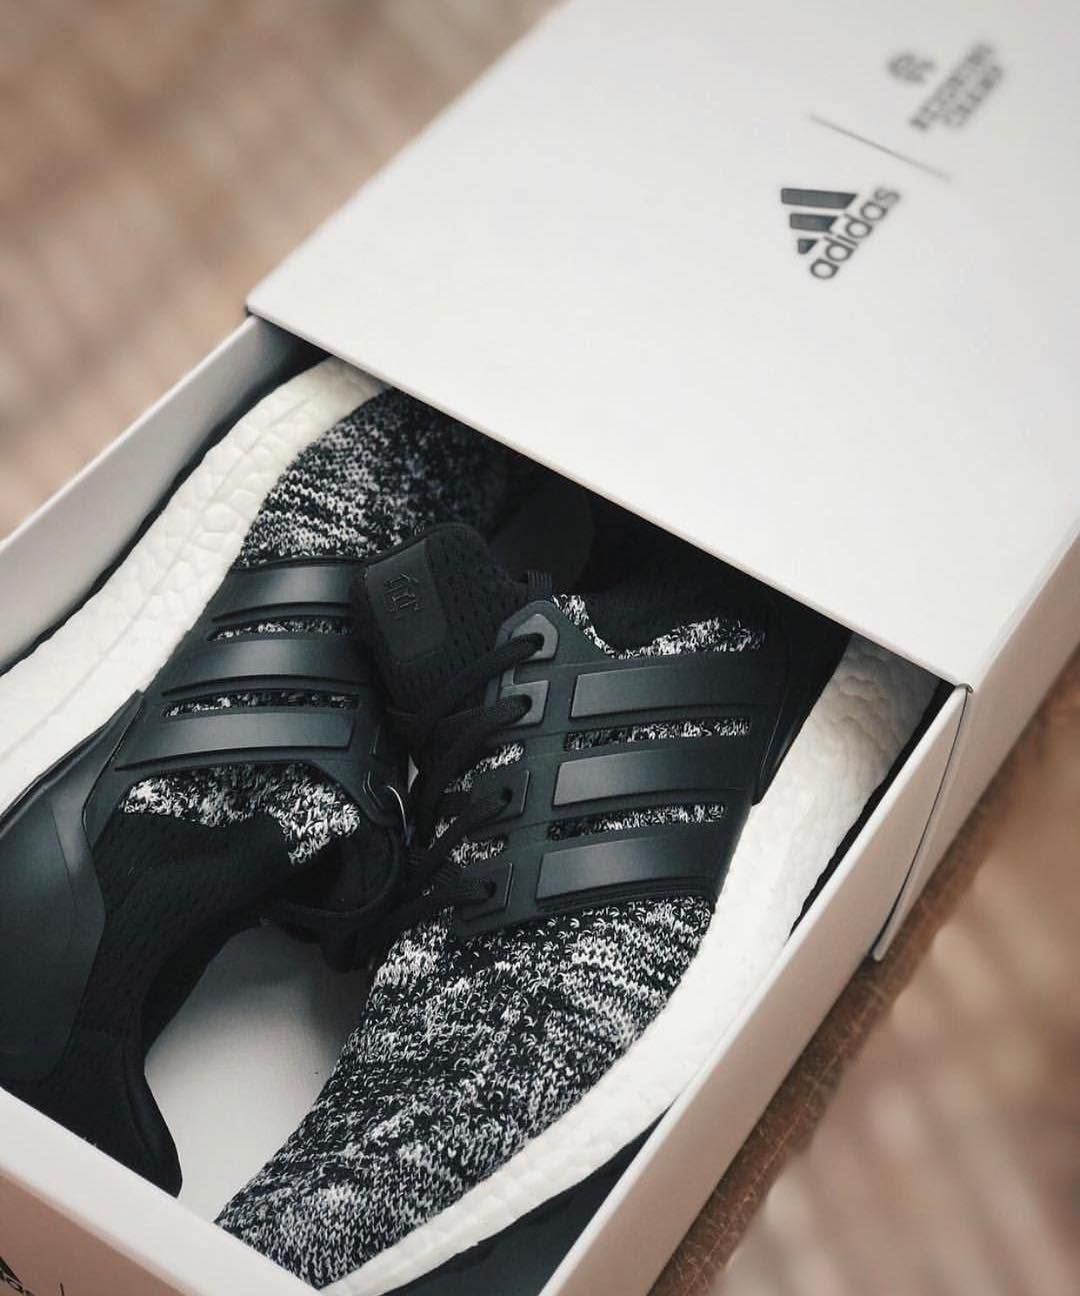 Con l'unboxing del @ reigningchamp adidas ultra impulso � @ firstblud